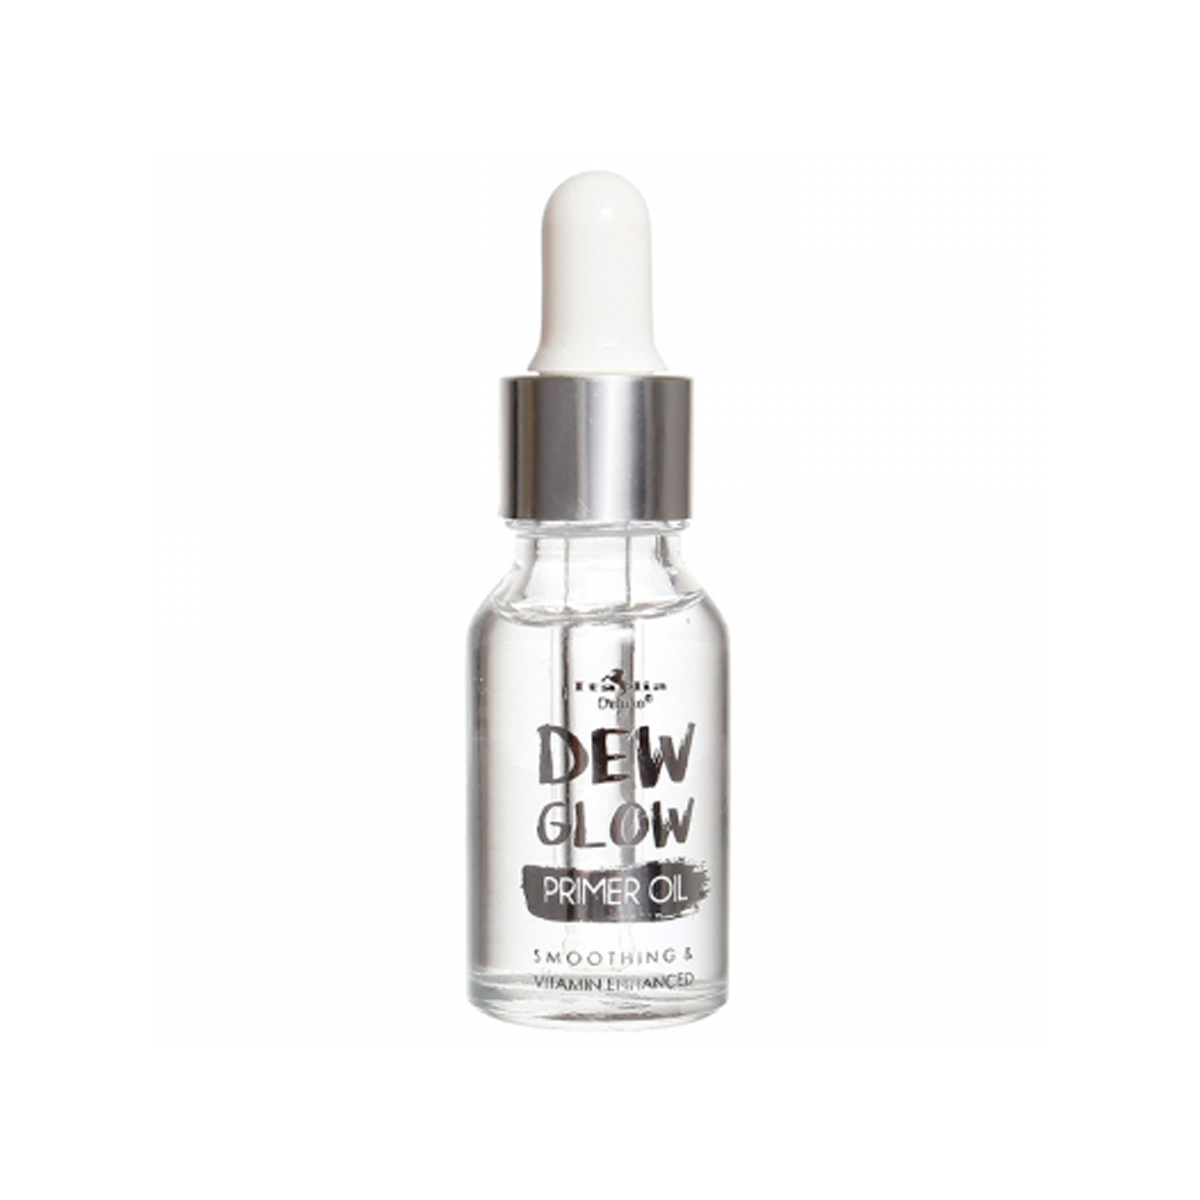 Dew Glow Primer Oil - Smoothing